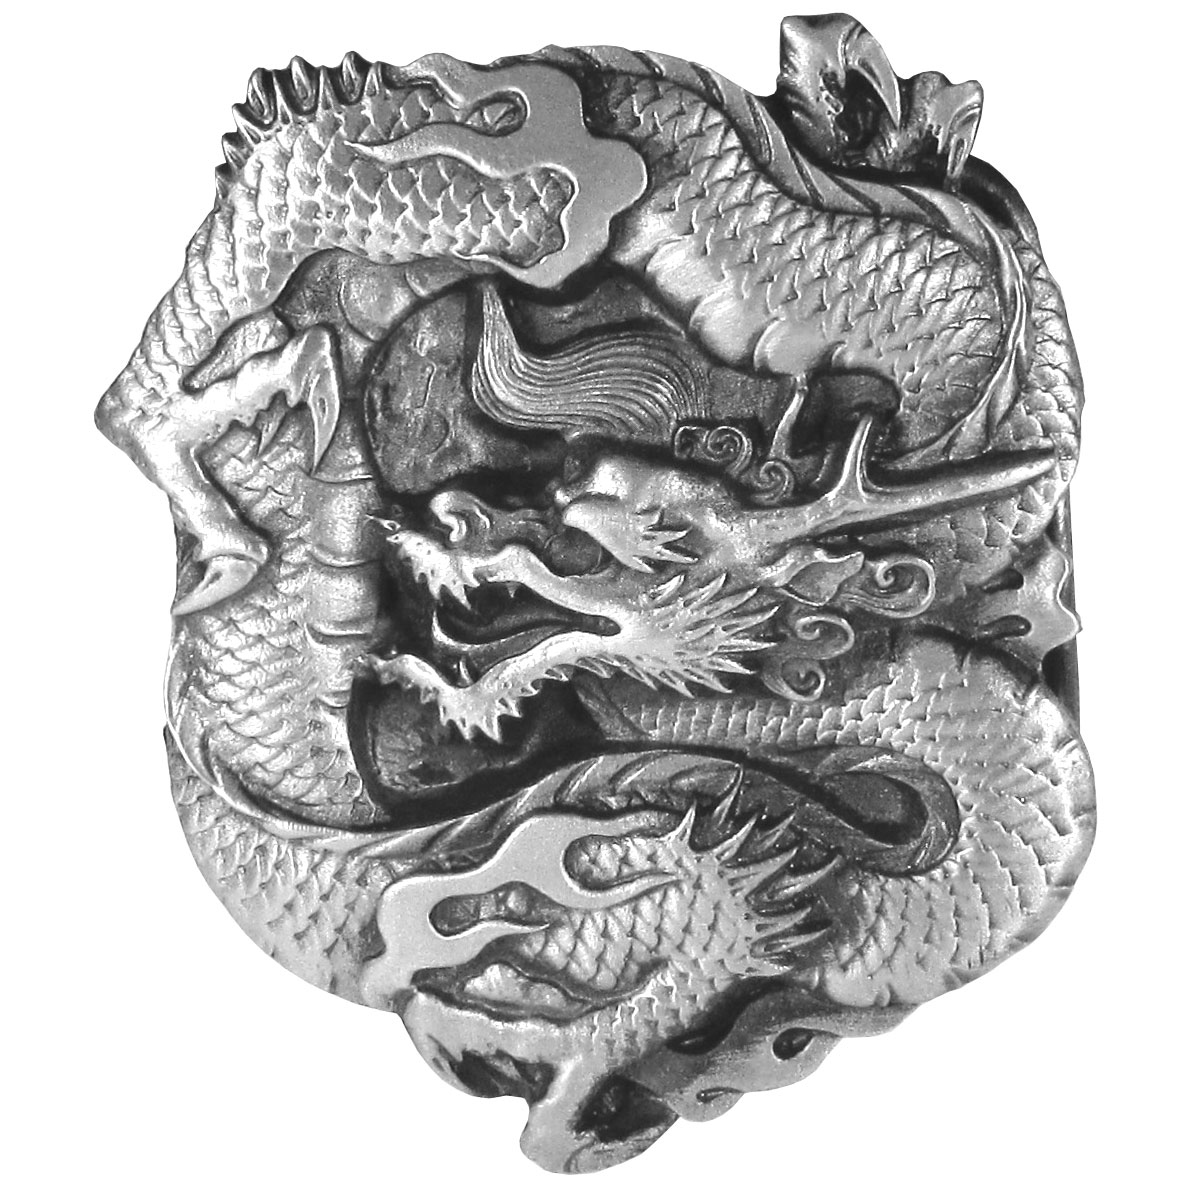 "Dragon Antiqued Belt Buckle - Dragon belt buckle featues a dragon curled up with his mouth open. This exquisitely carved buckle is made of fully cast metal with a standard bale that fits up to 2"" belts. Siskiyou's unique buckle designs often become collectors items and are unequaled with the best craftsmanship."